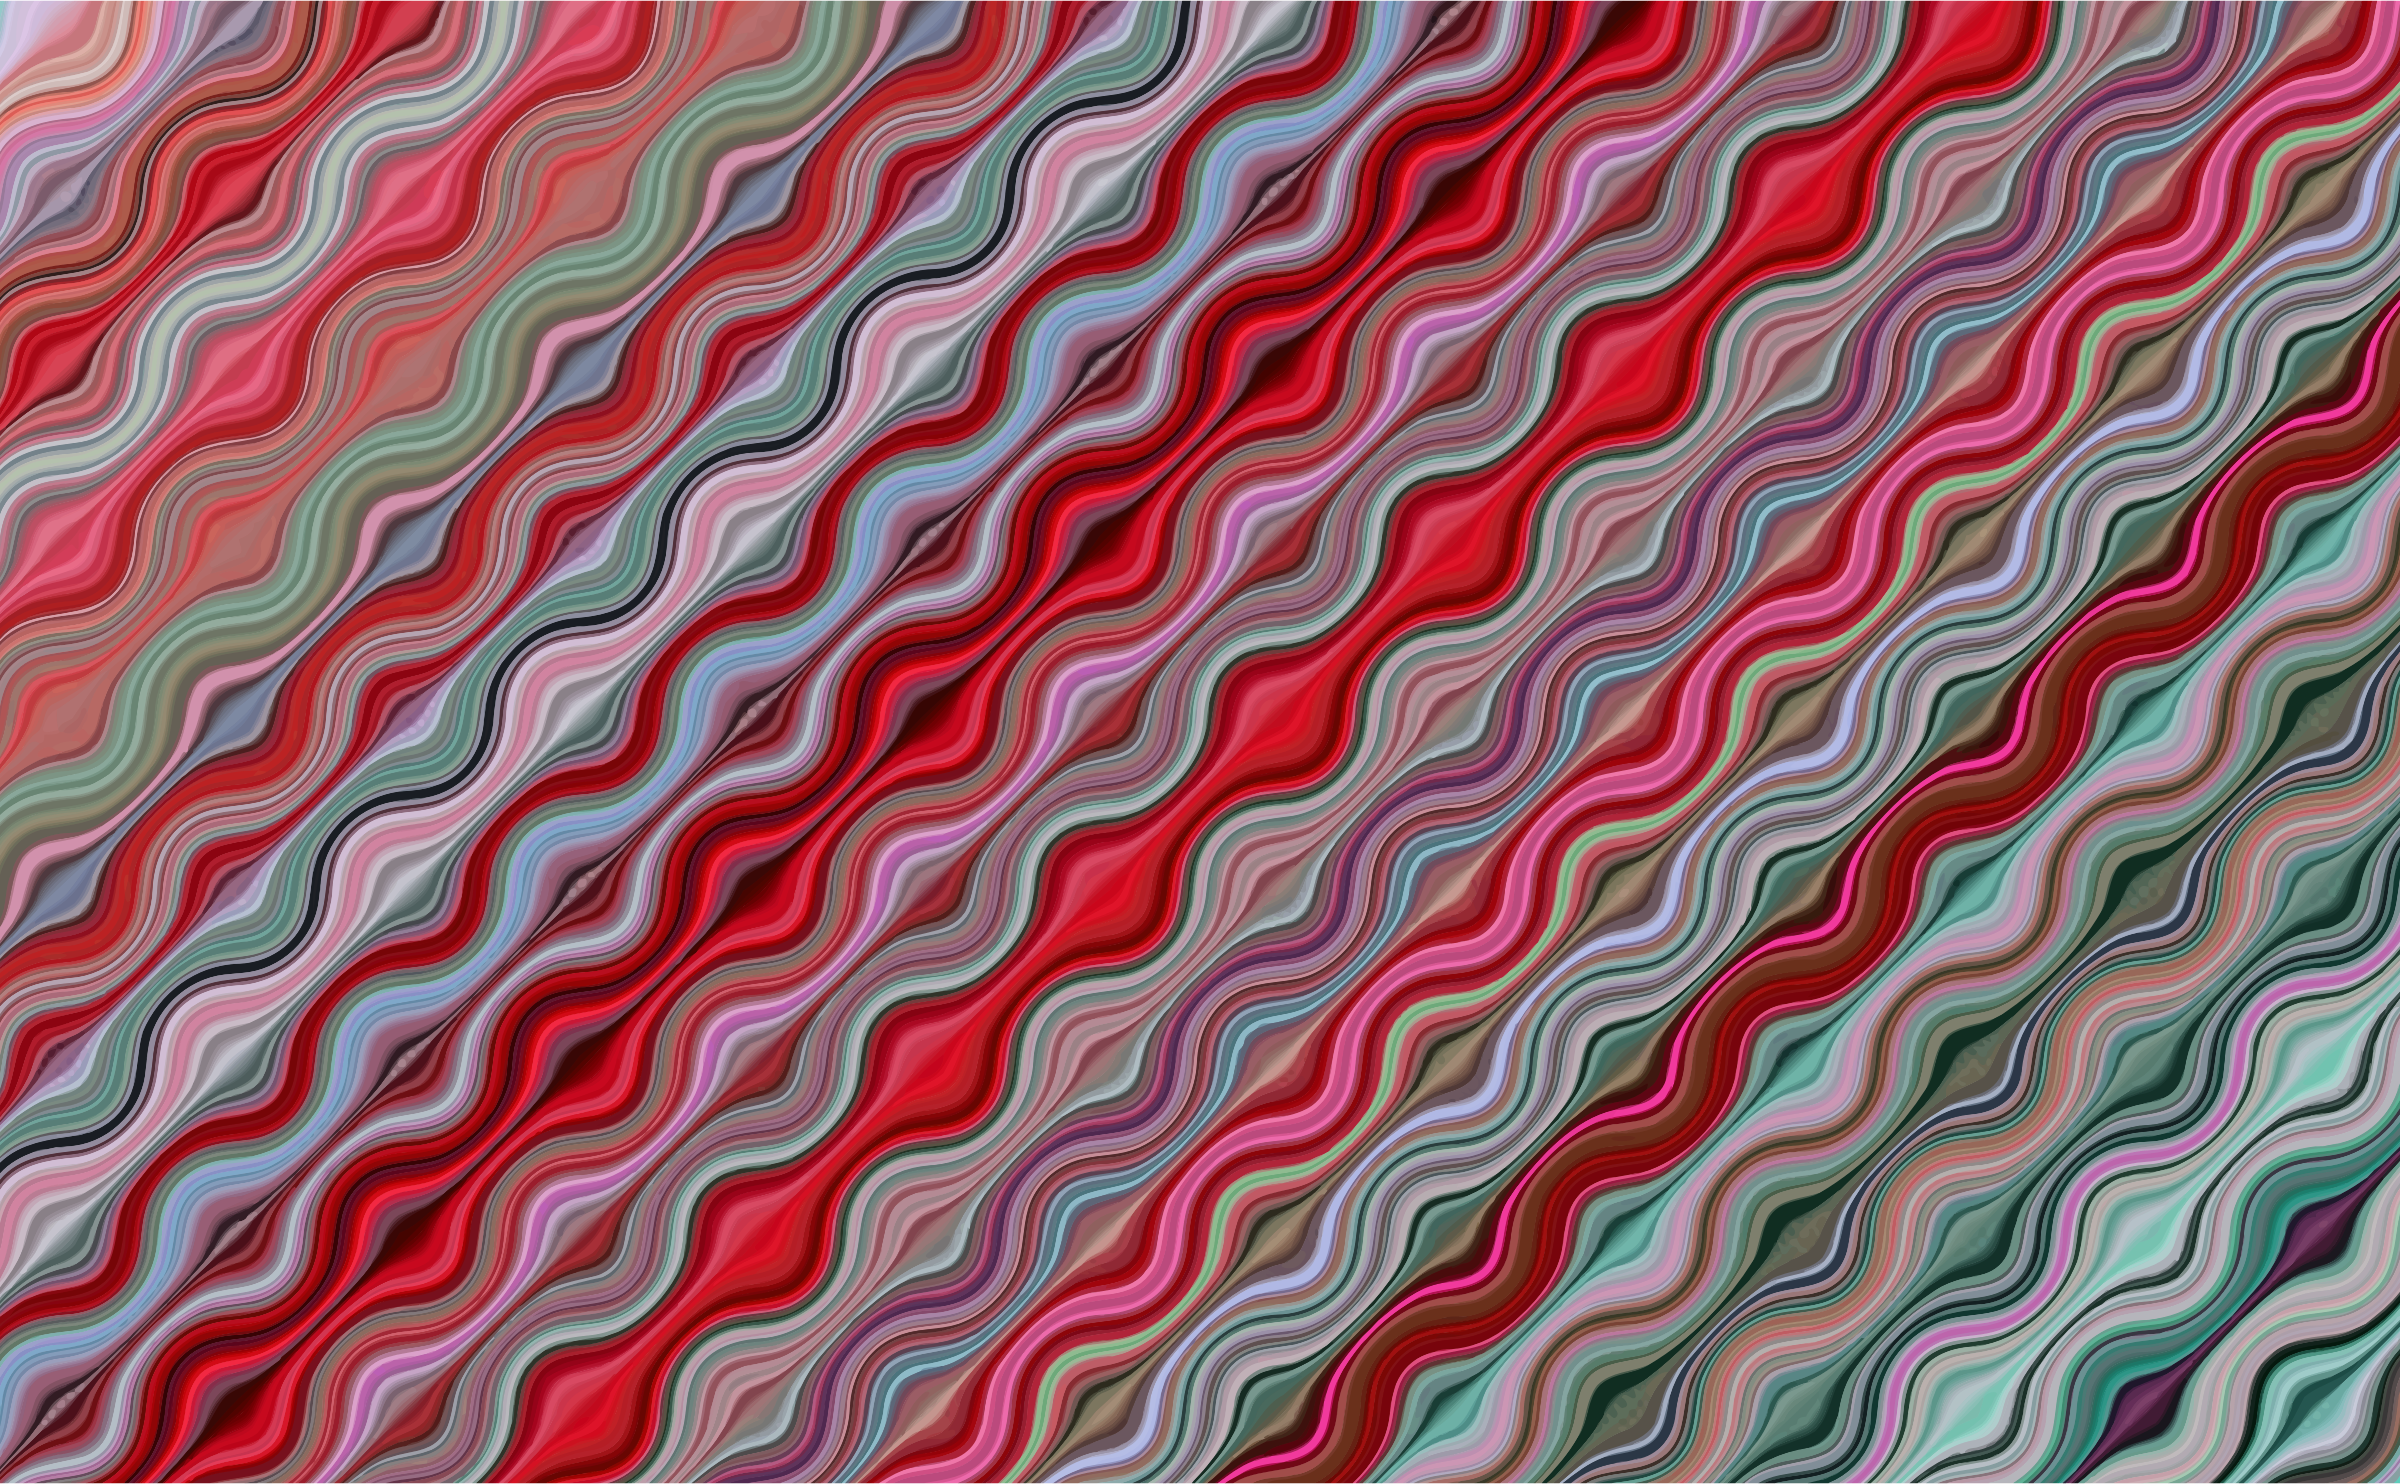 Background pattern 216 by Firkin